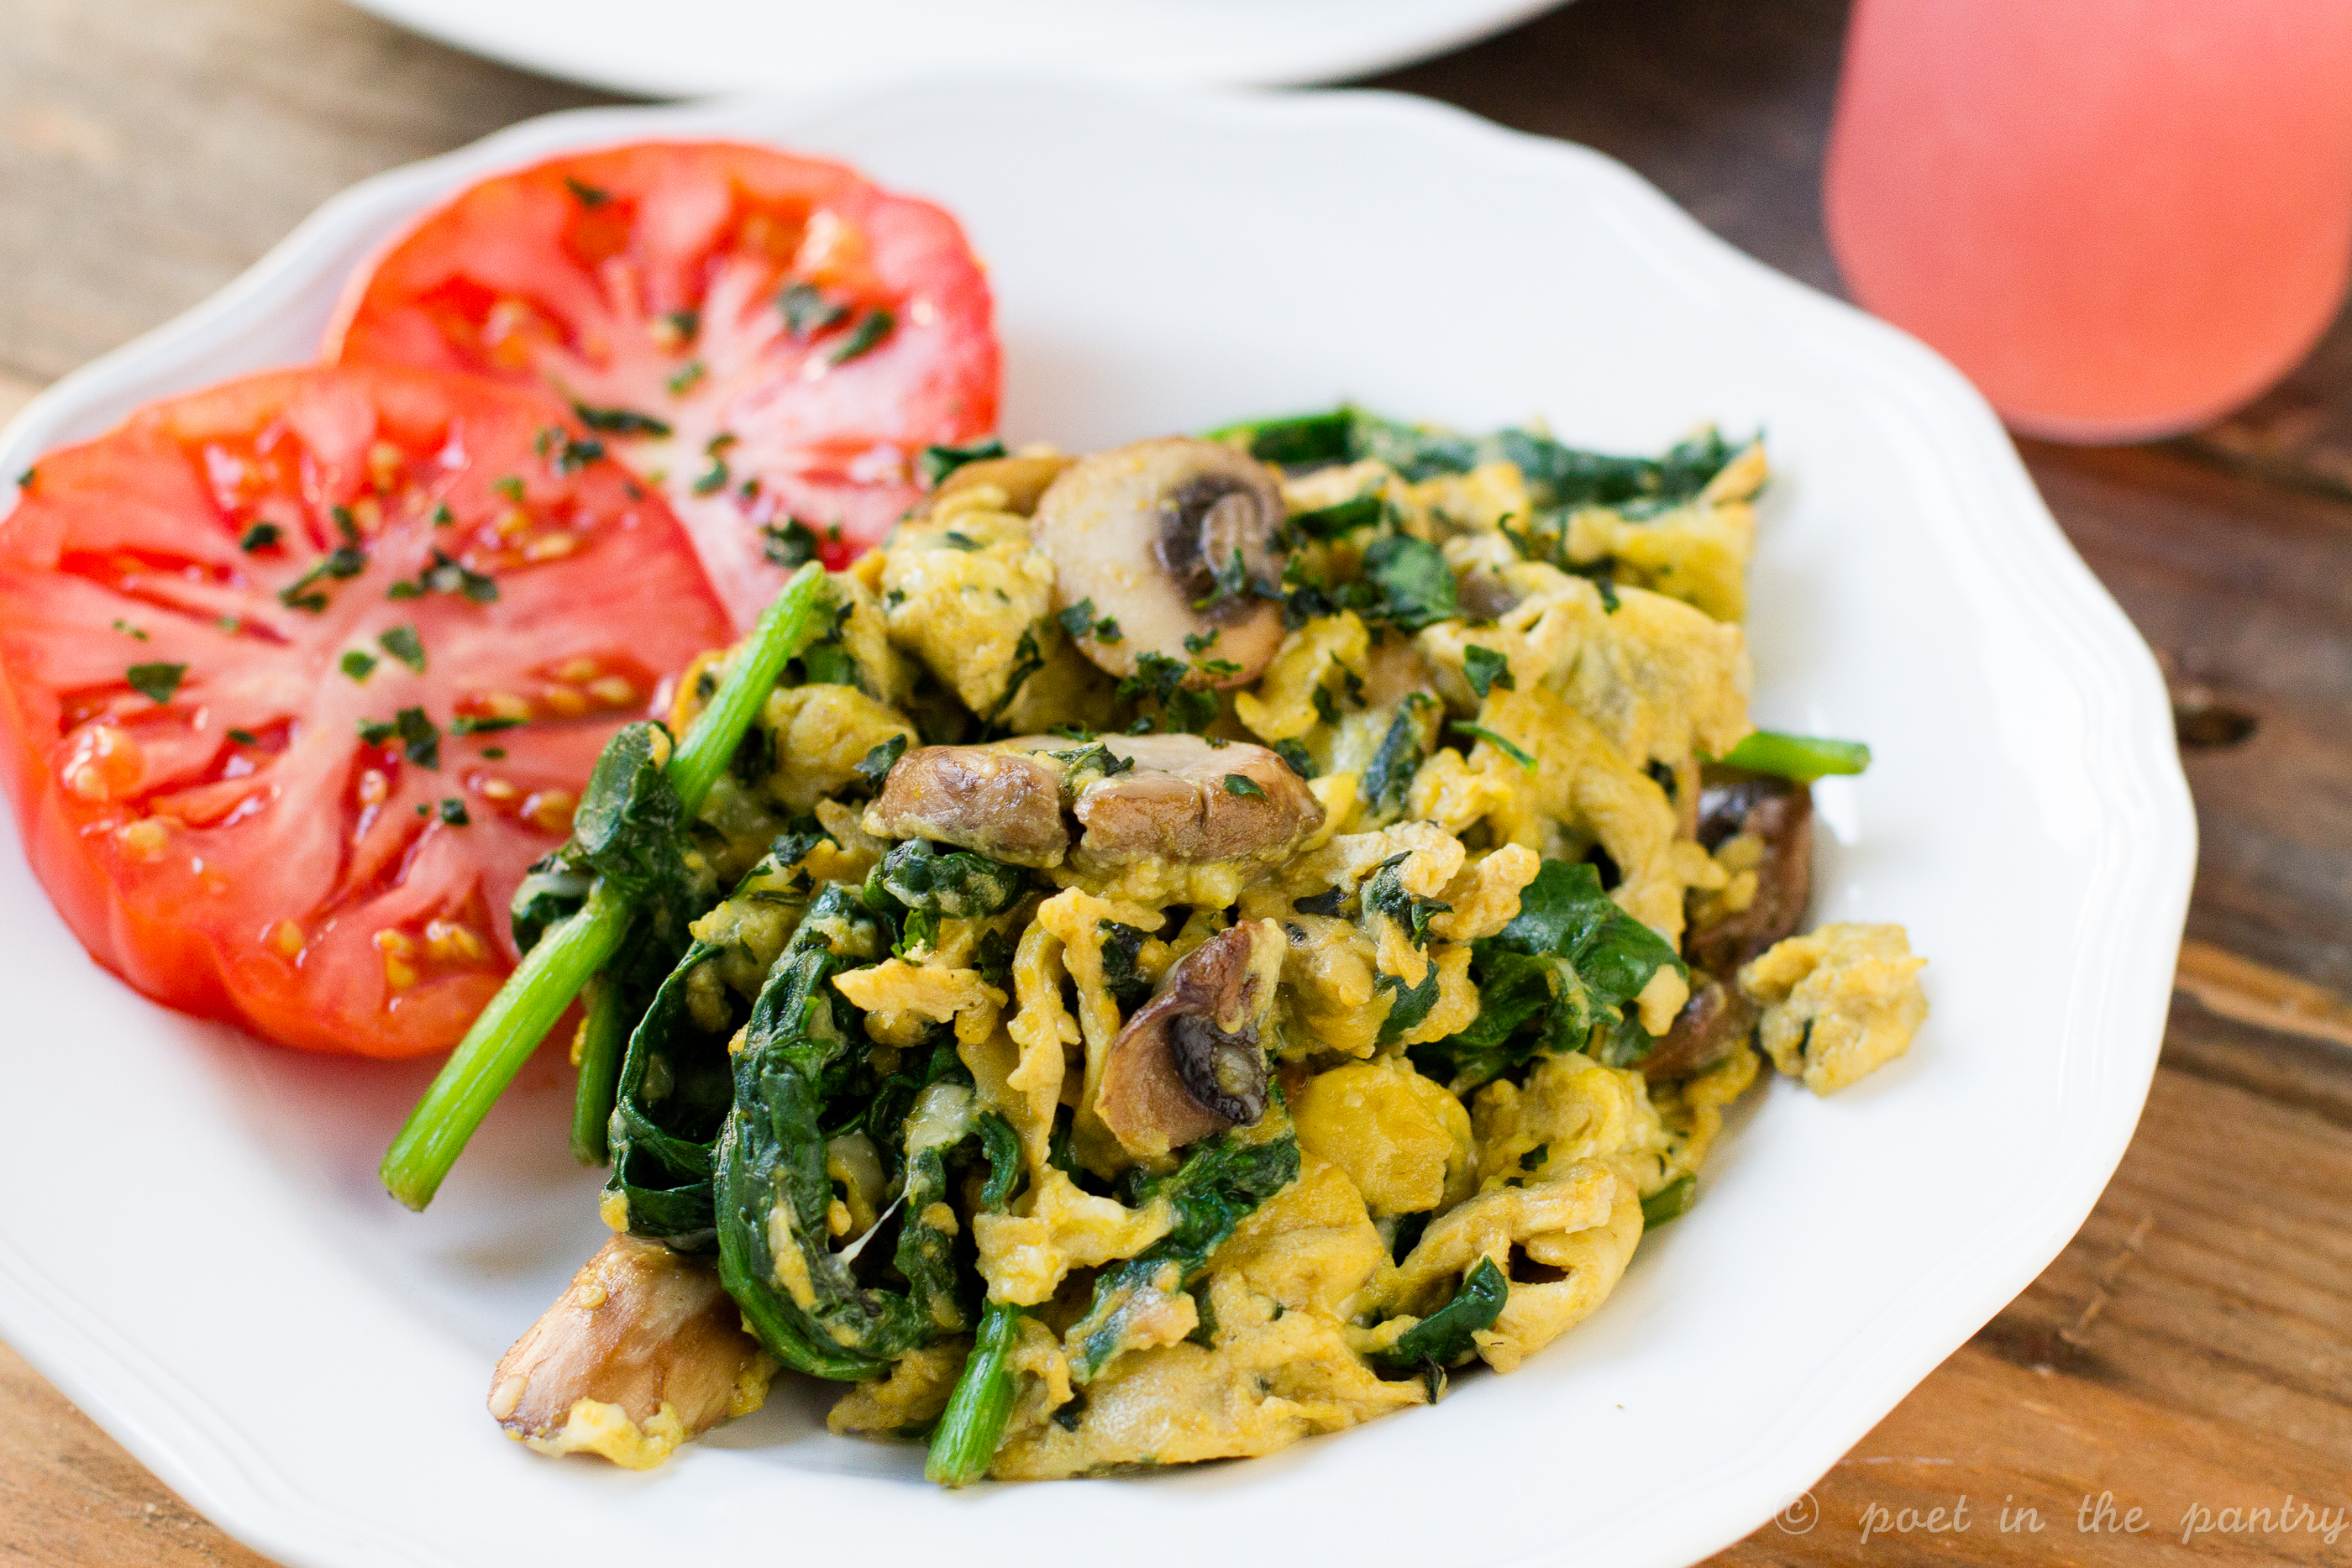 Scrambled Eggs With Cheese Basil Spinach And Mushrooms Poet In The Pantry